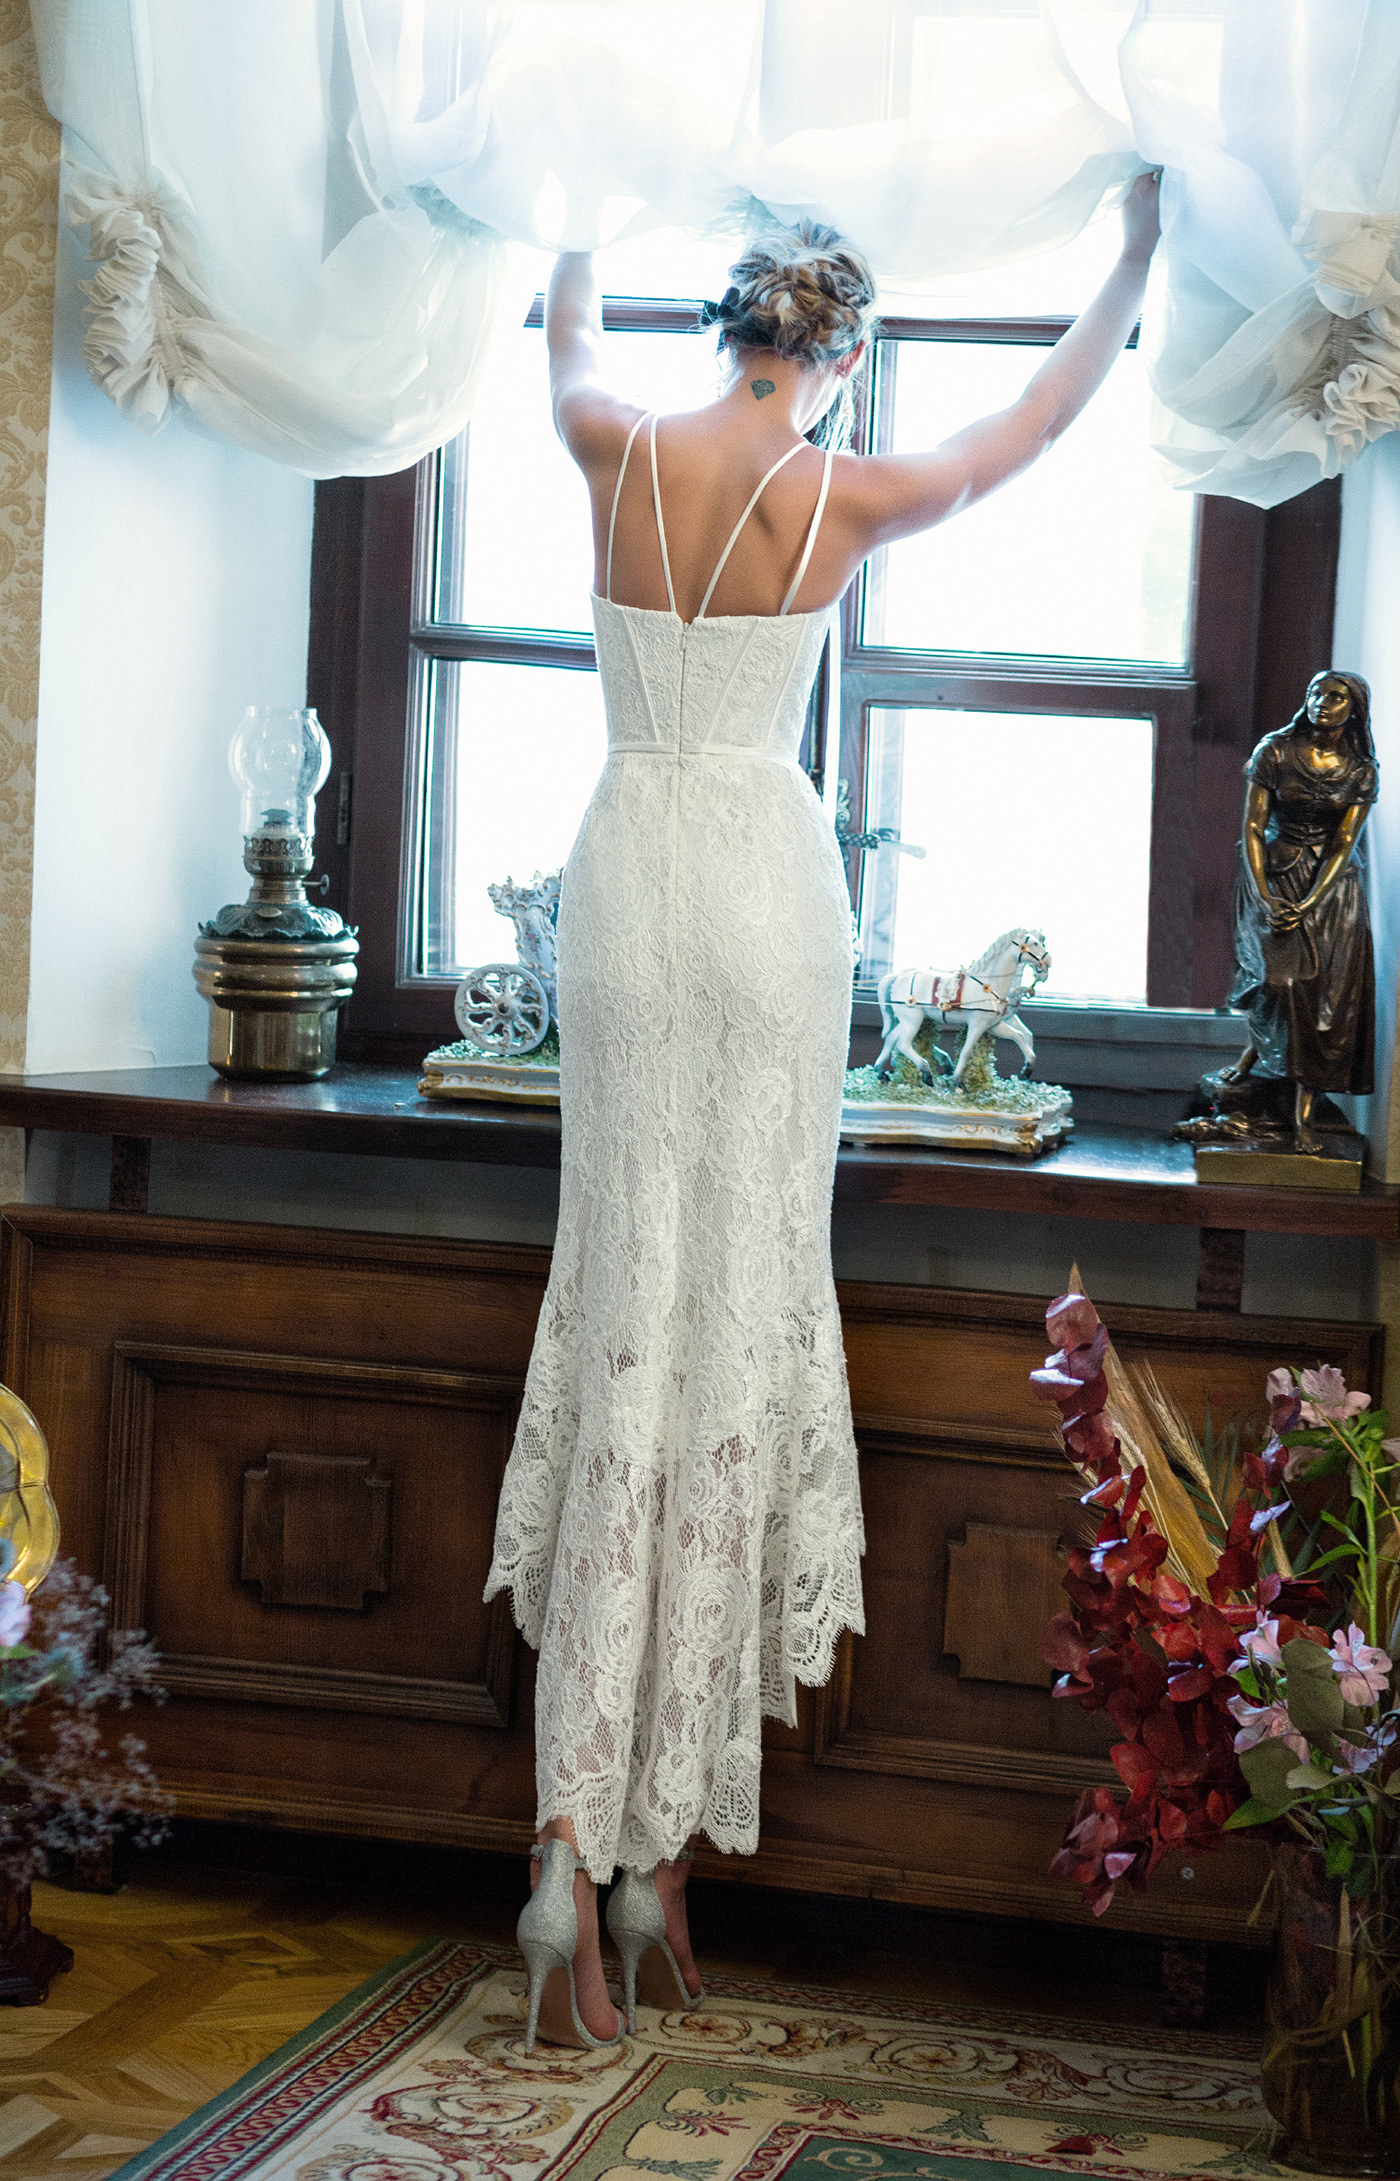 Image may contain: indoor, wedding dress and vase